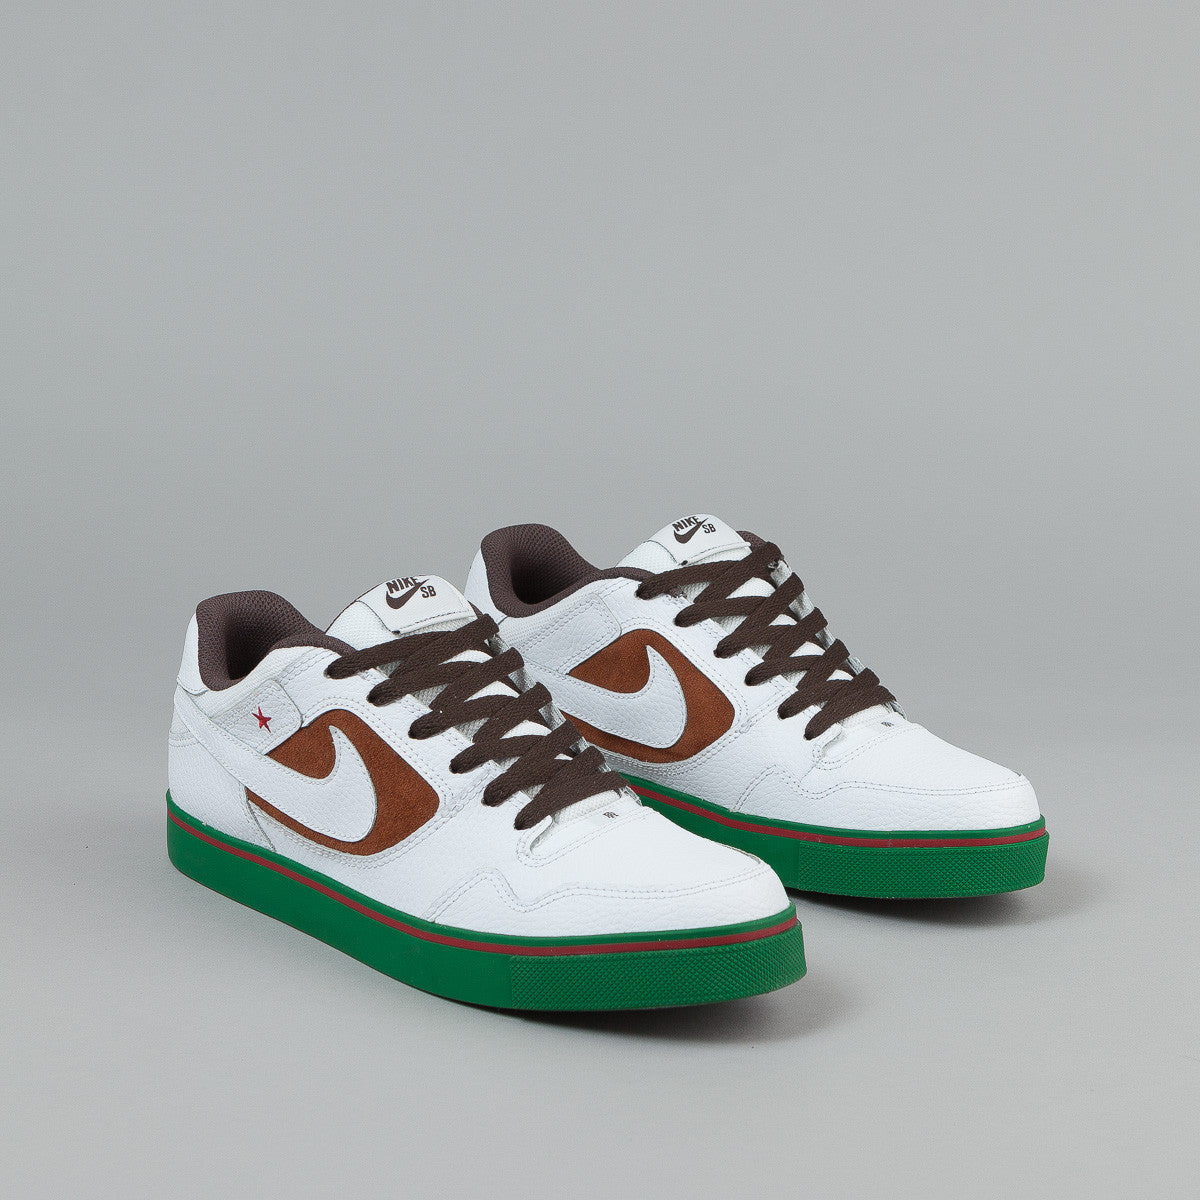 Nike SB Paul Rodriguez 2.5 Shoes - Pecan / White - Dark Chocolate